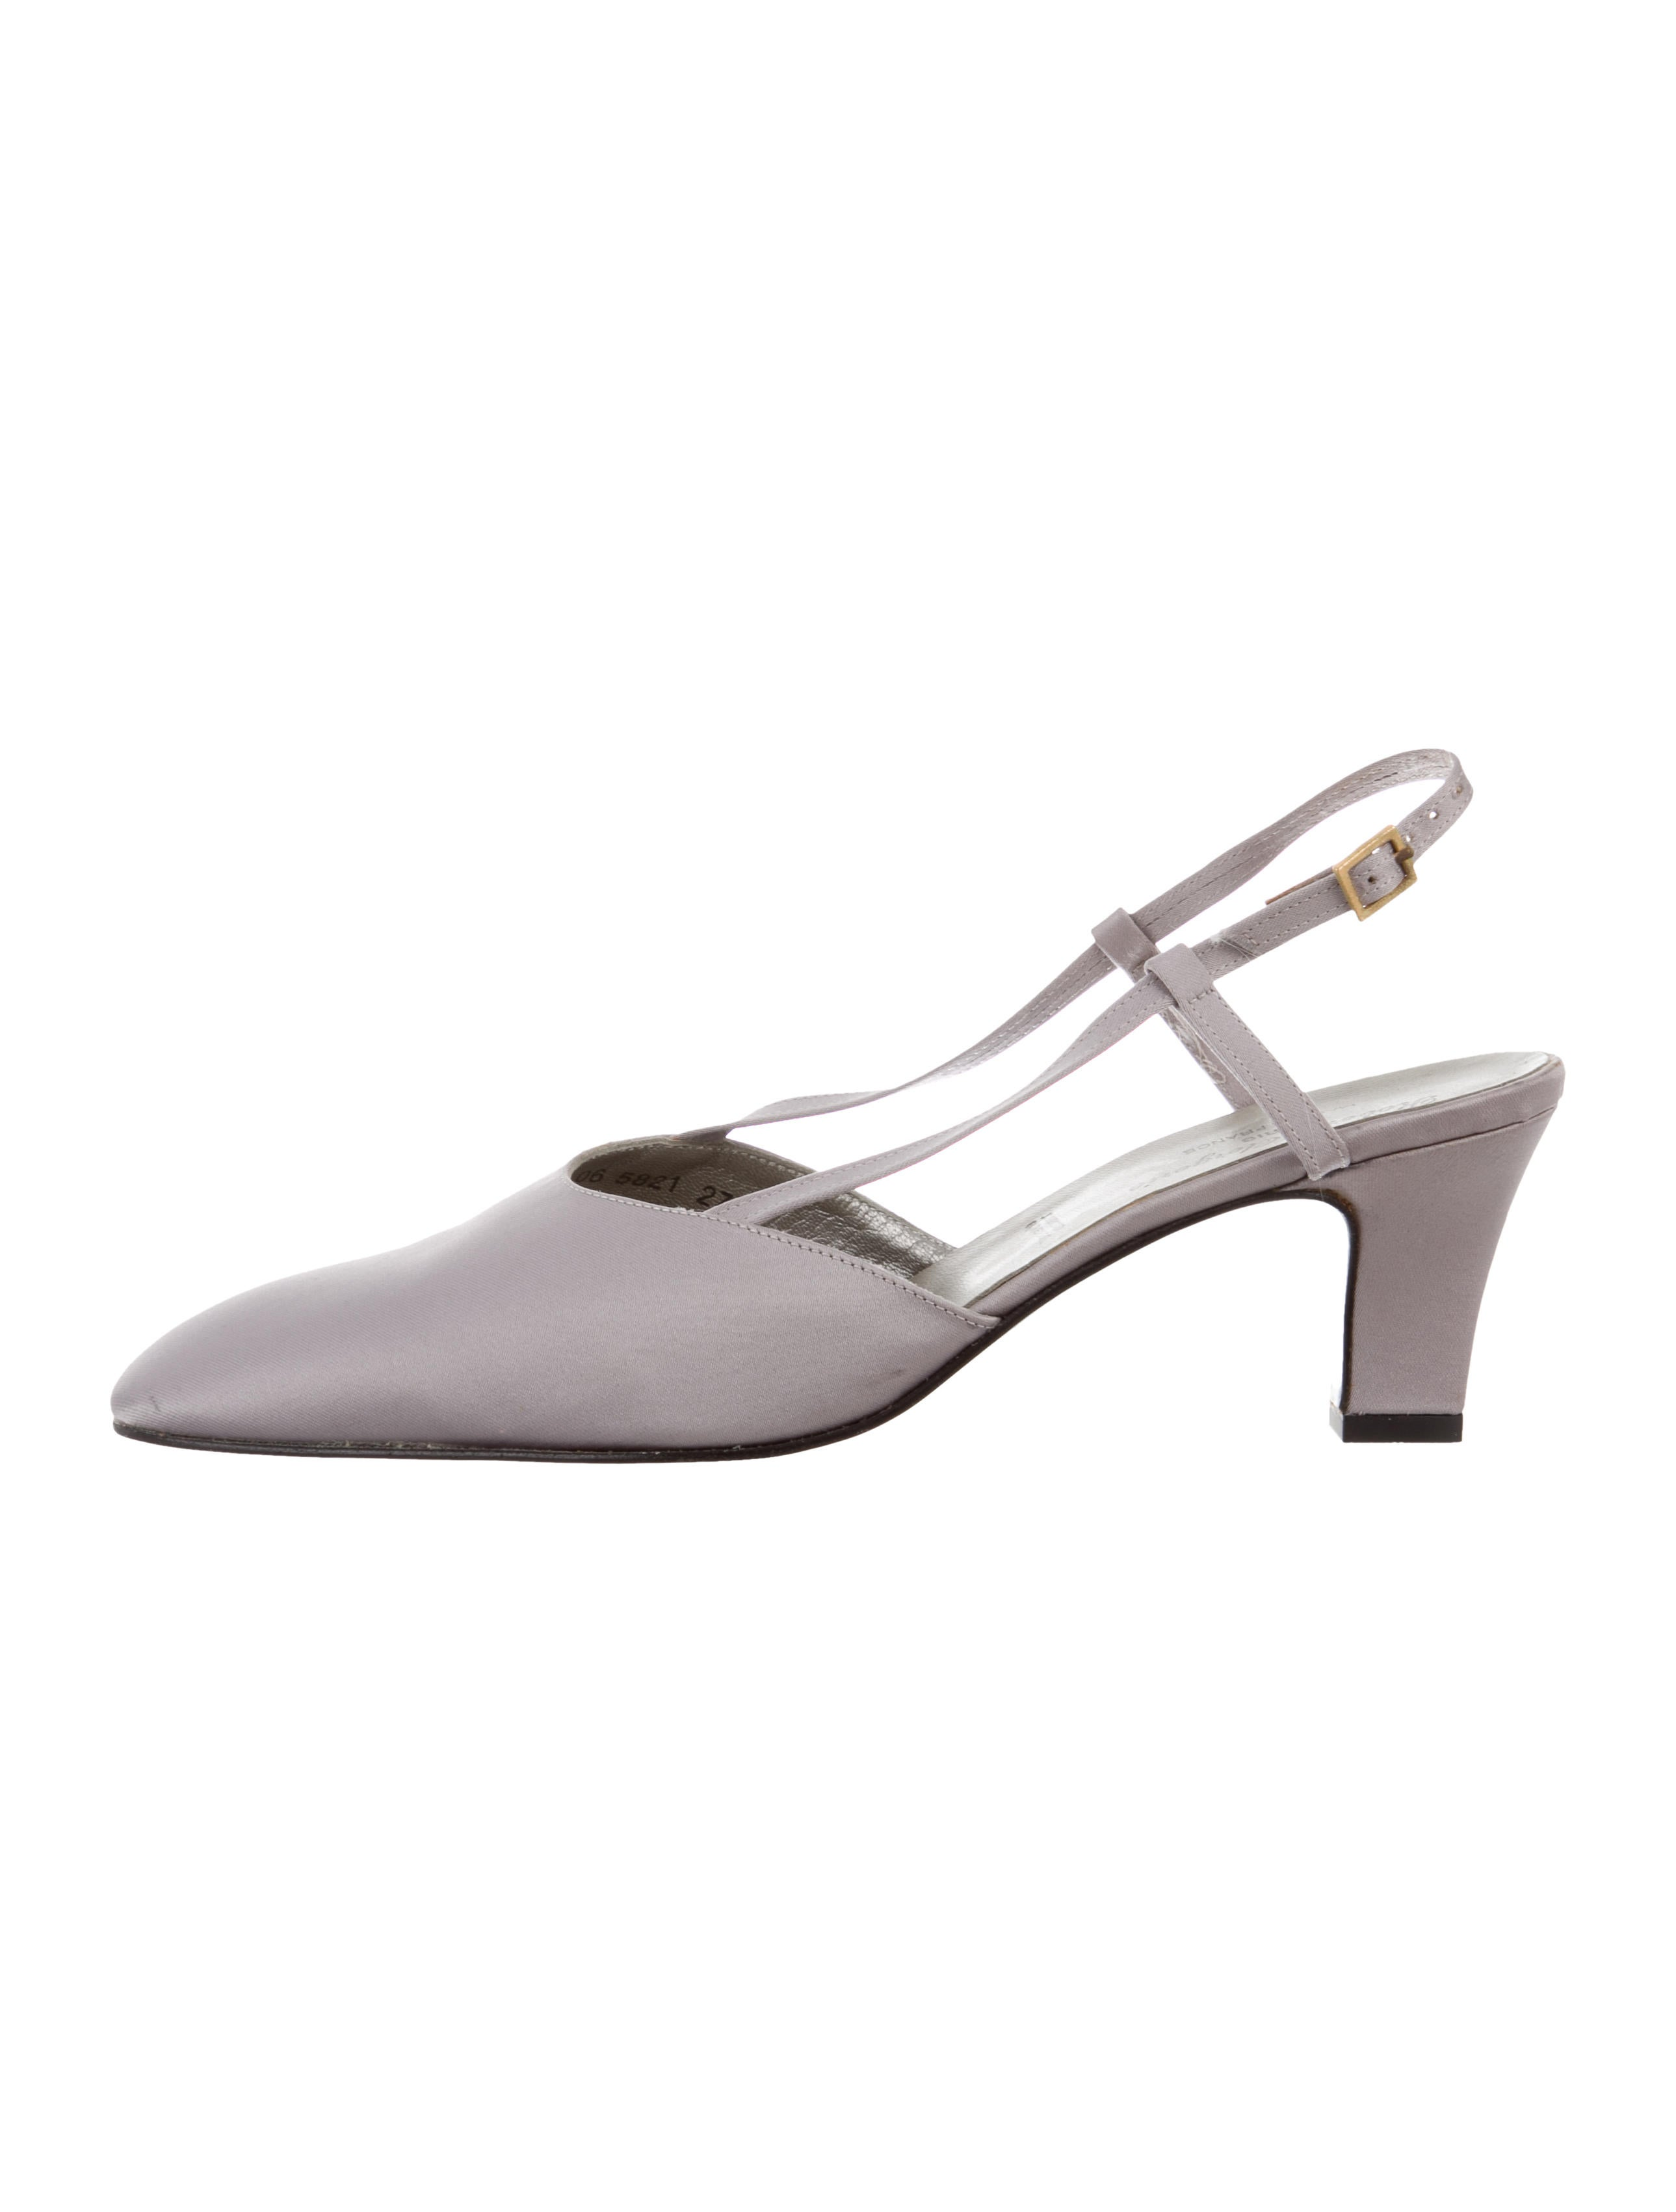 Robert Clergerie Clergerie Paris Slingback Square-Toe Pumps best seller sale online cheap sale best wholesale sale visit new clearance Manchester free shipping with mastercard IizBlsJ